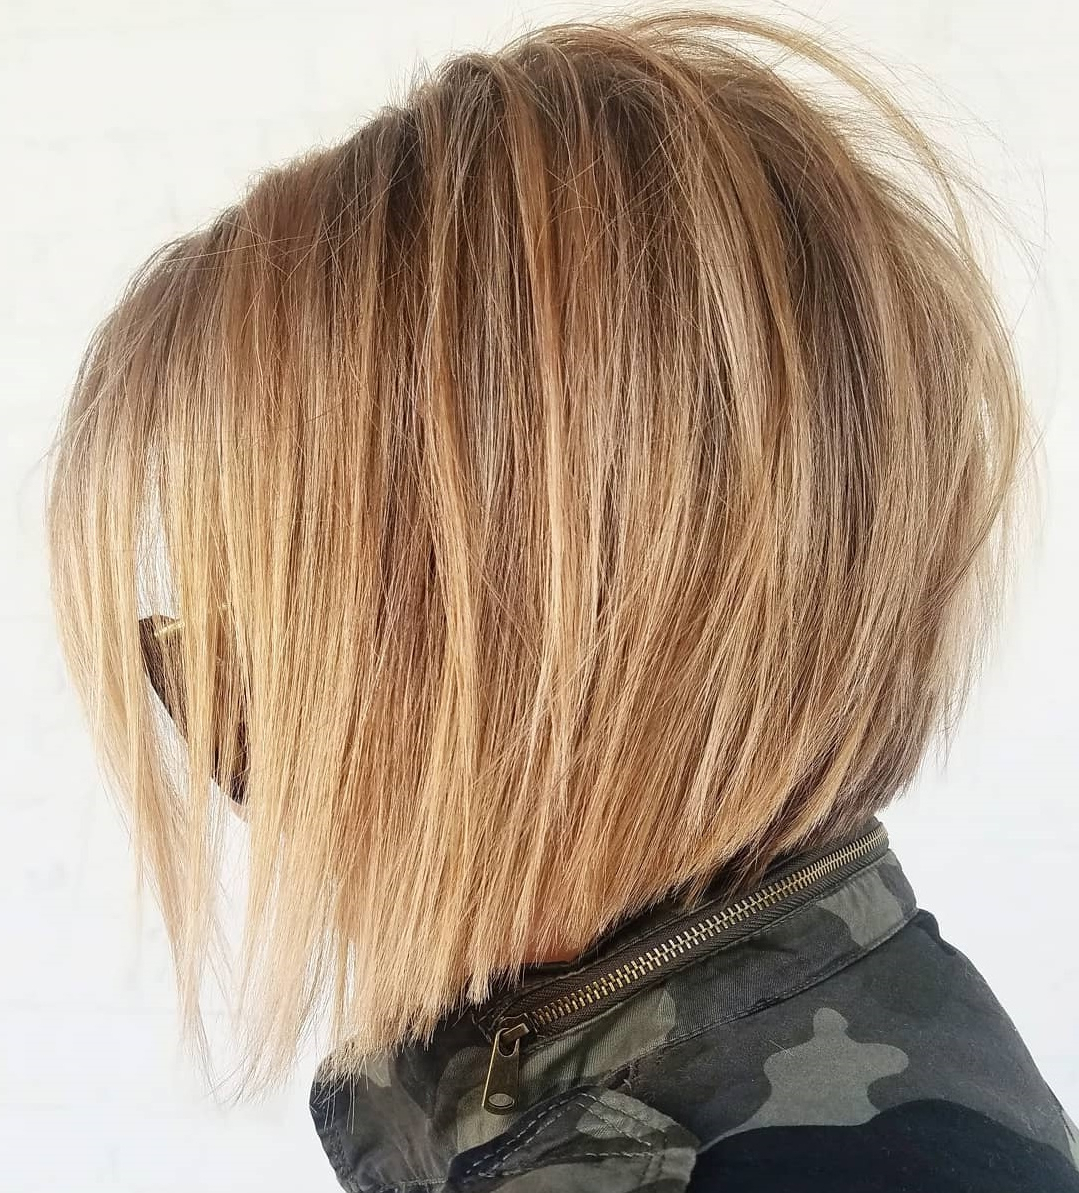 Most Recent Shag Haircuts With Blunt Ends And Angled Layers Inside 45 Short Hairstyles For Fine Hair To Rock In (View 4 of 20)